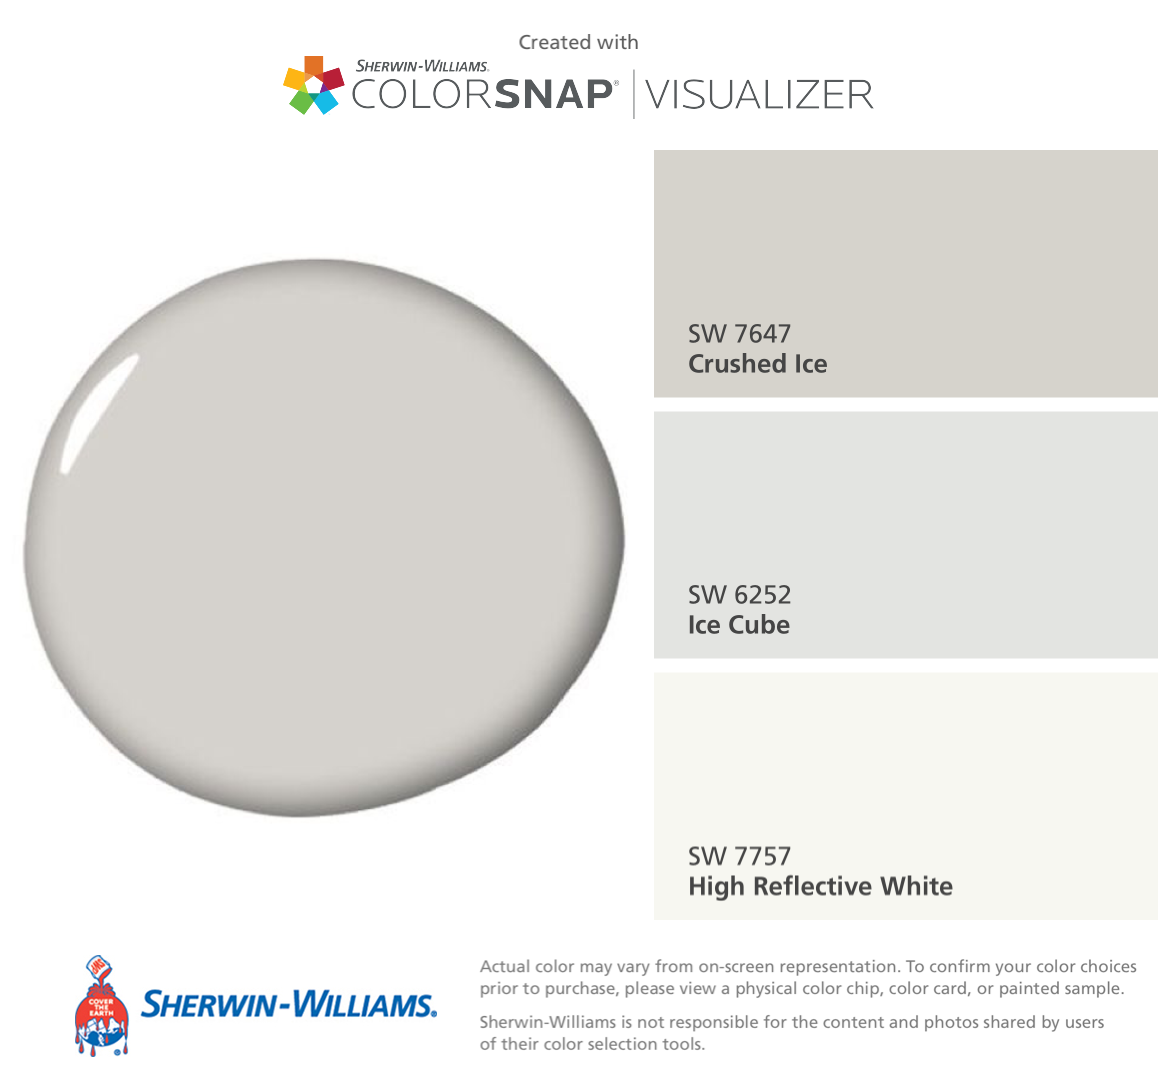 I Found These Colors With Colorsnap Visualizer For Iphone By Sherwin Williams Crushed Ice Sw 7647 Cube 6252 High Reflective White 7757